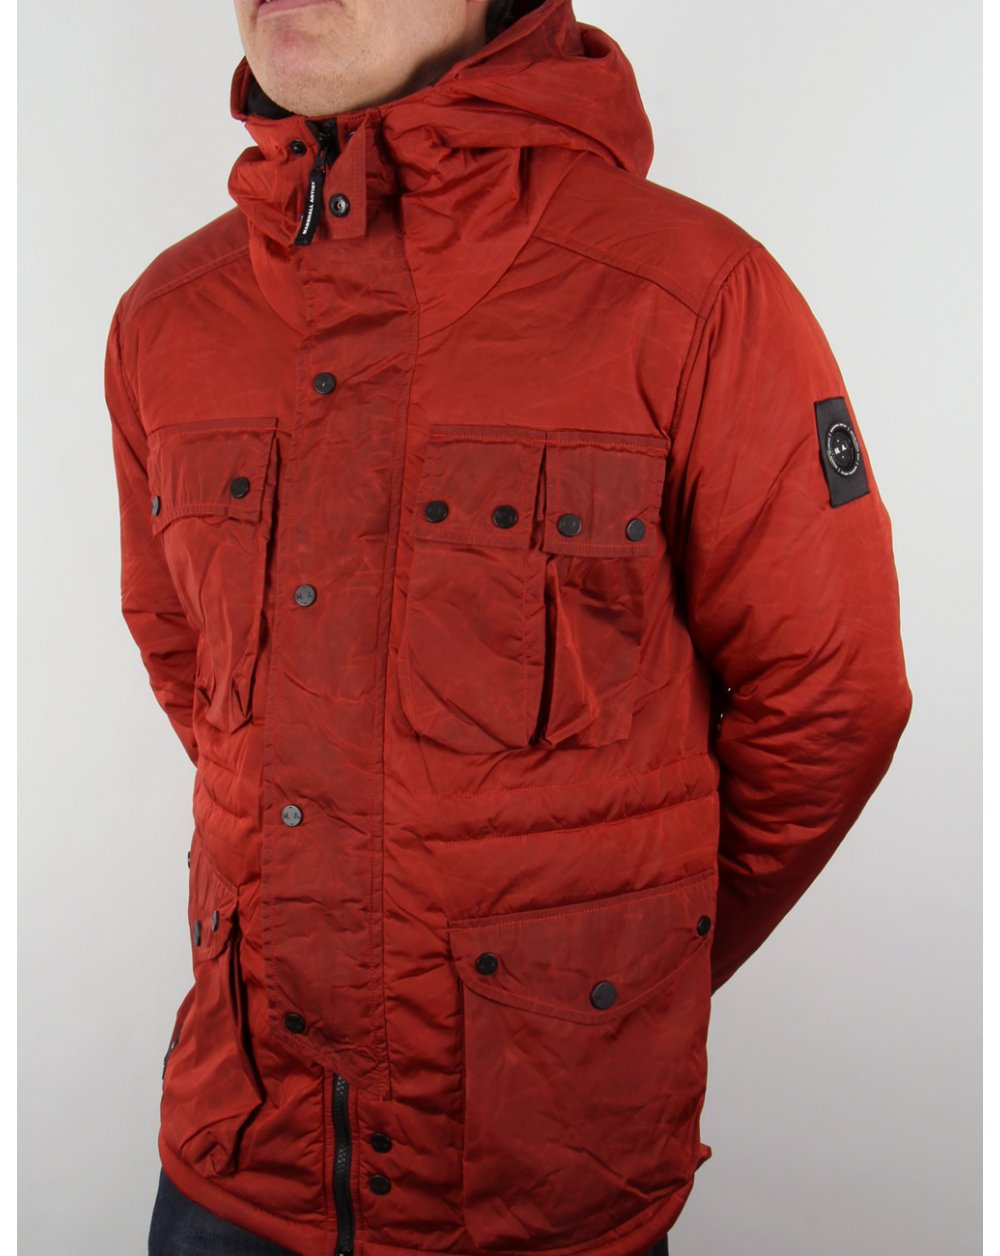 hooded jacket, burnt orange